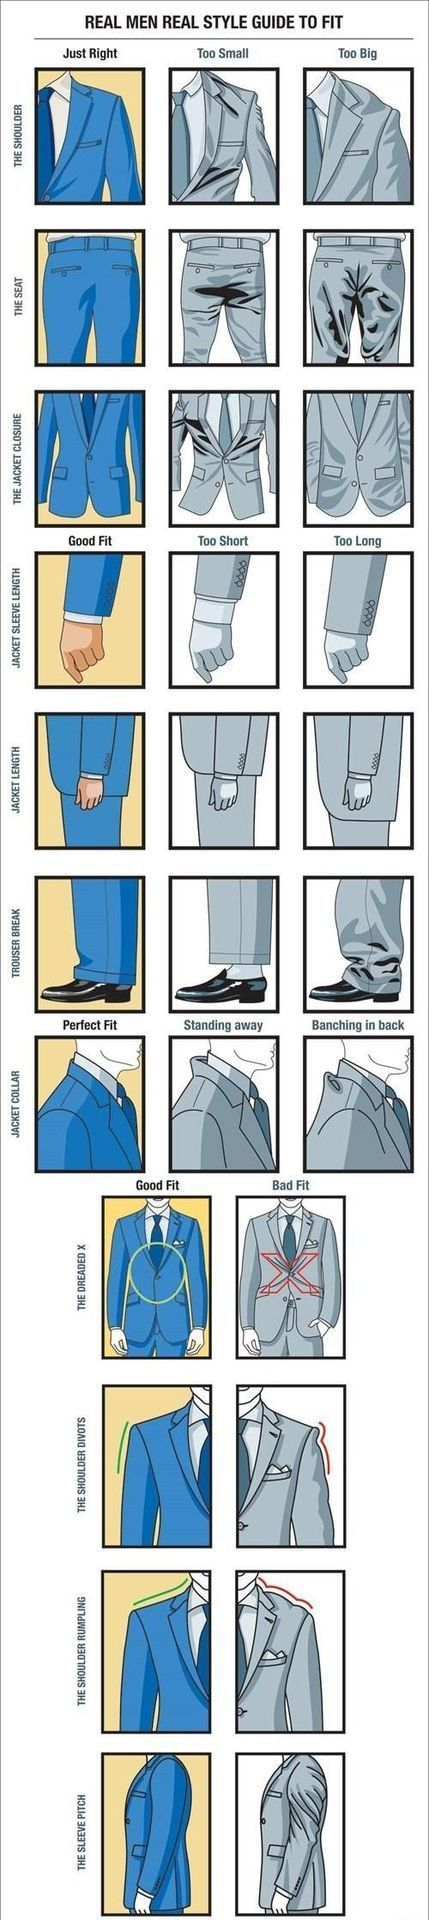 88 best gentlemans life hacks images on pinterest proverbs quotes a visual guide for how a proper fitting suit nvjuhfo Image collections